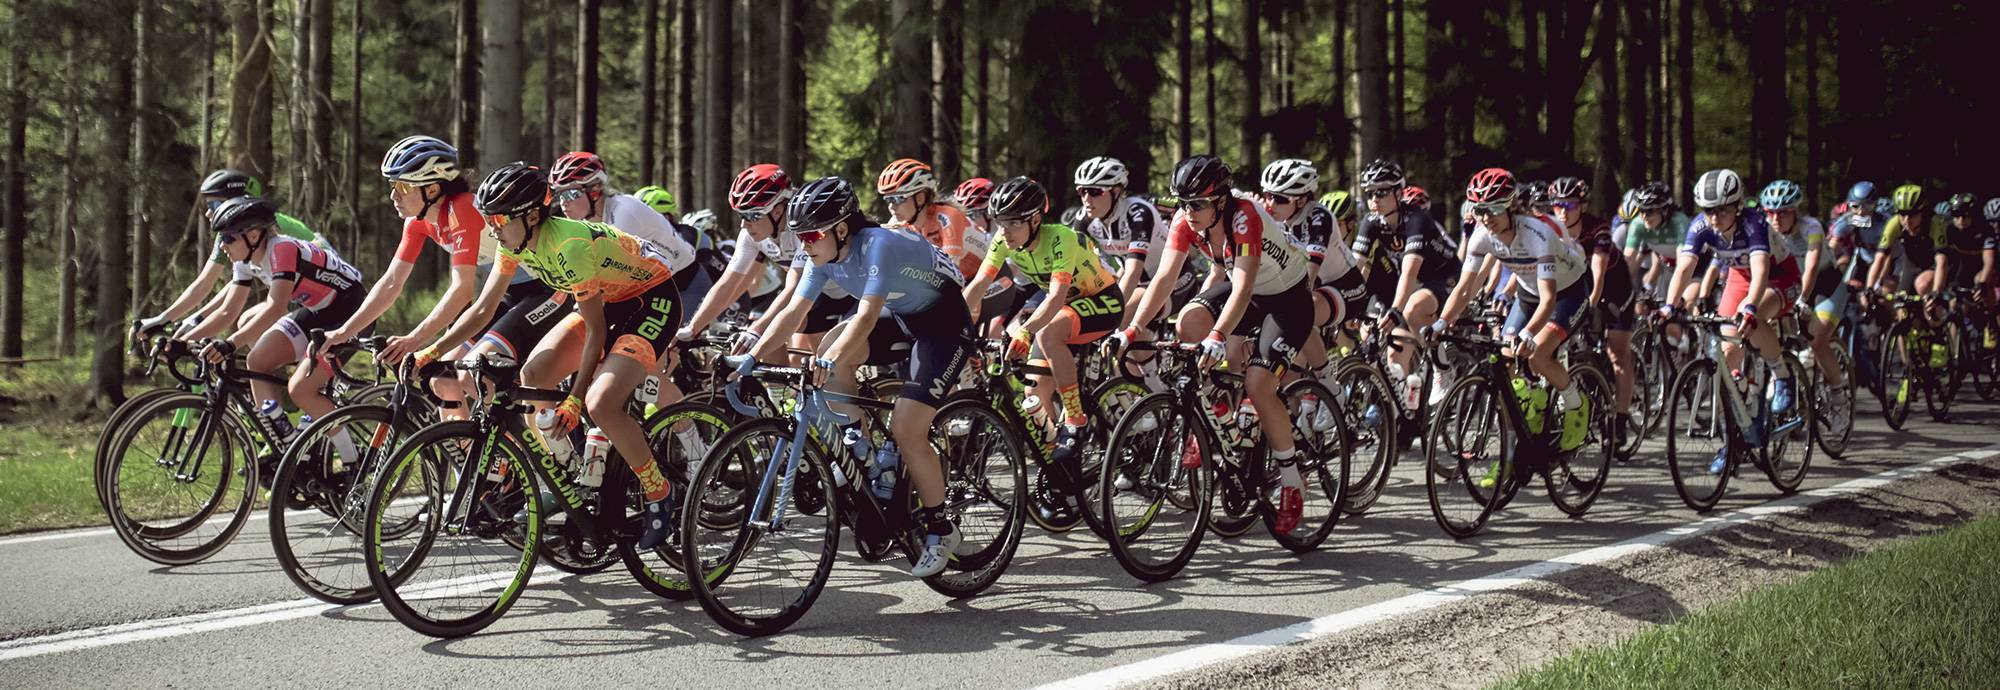 Header: TEAM TIBCO - SILICON VALLEY BANK